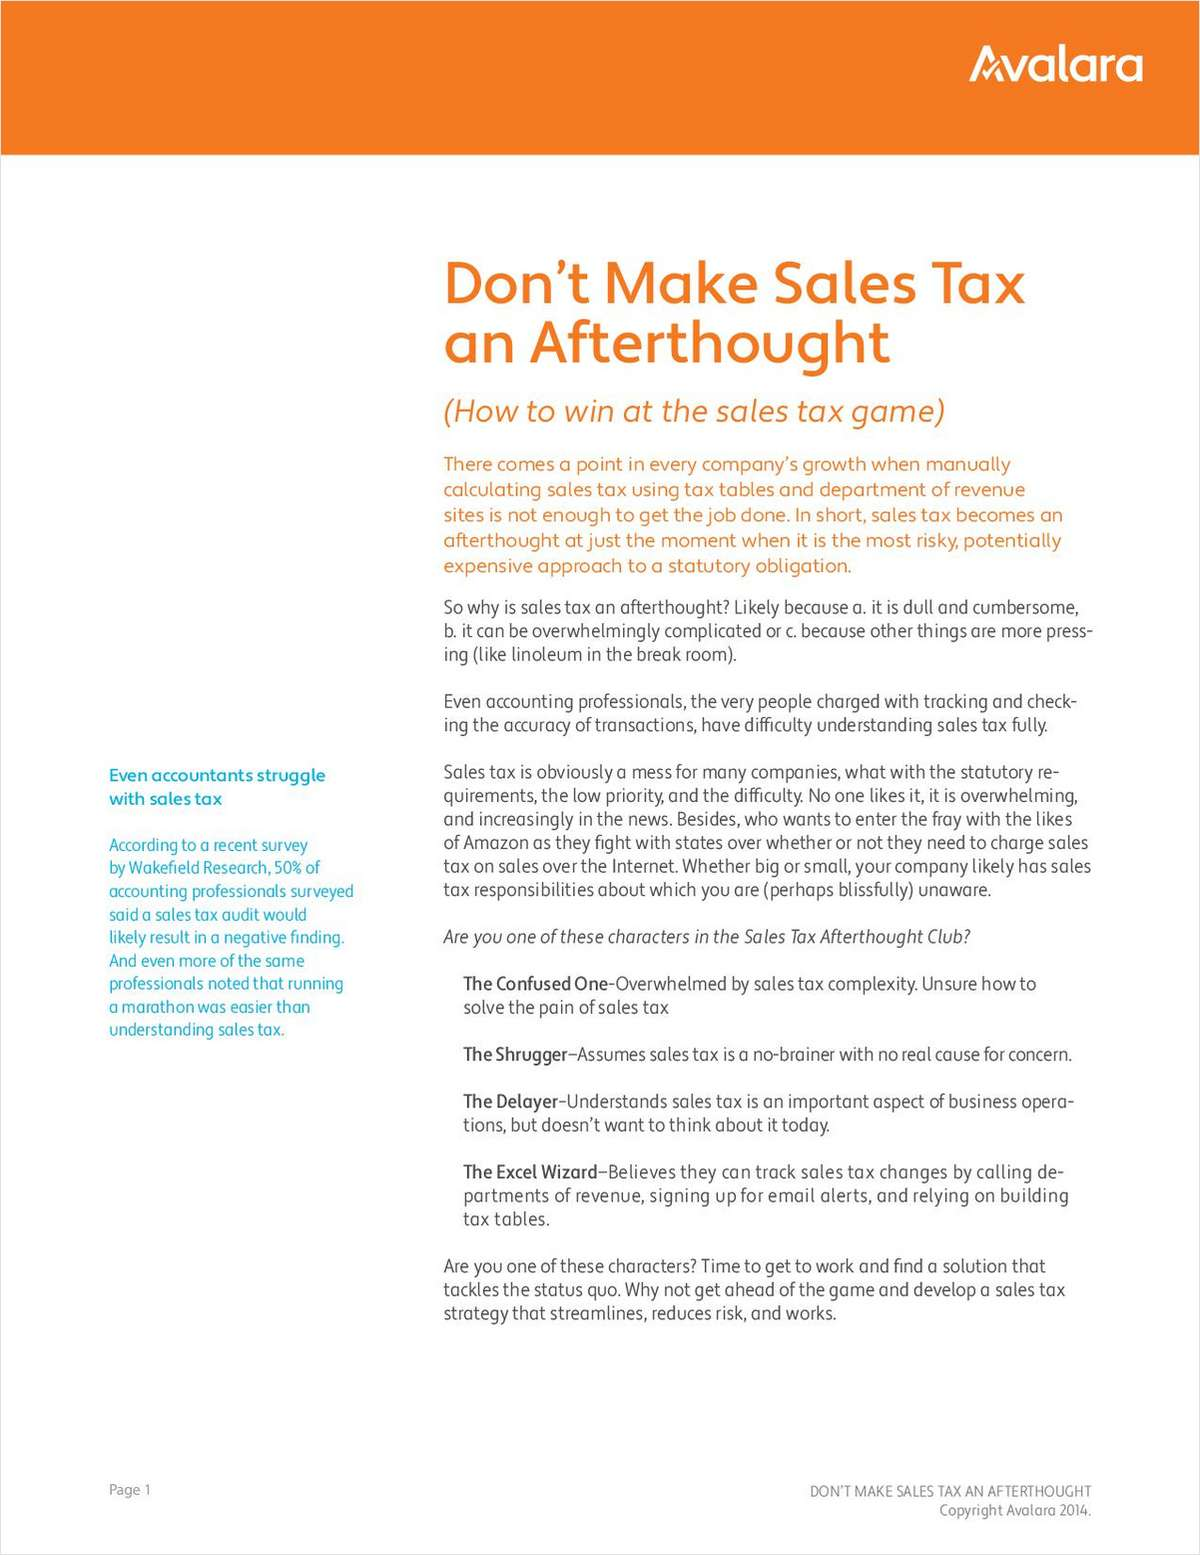 Don't Make Sales Tax an Afterthought